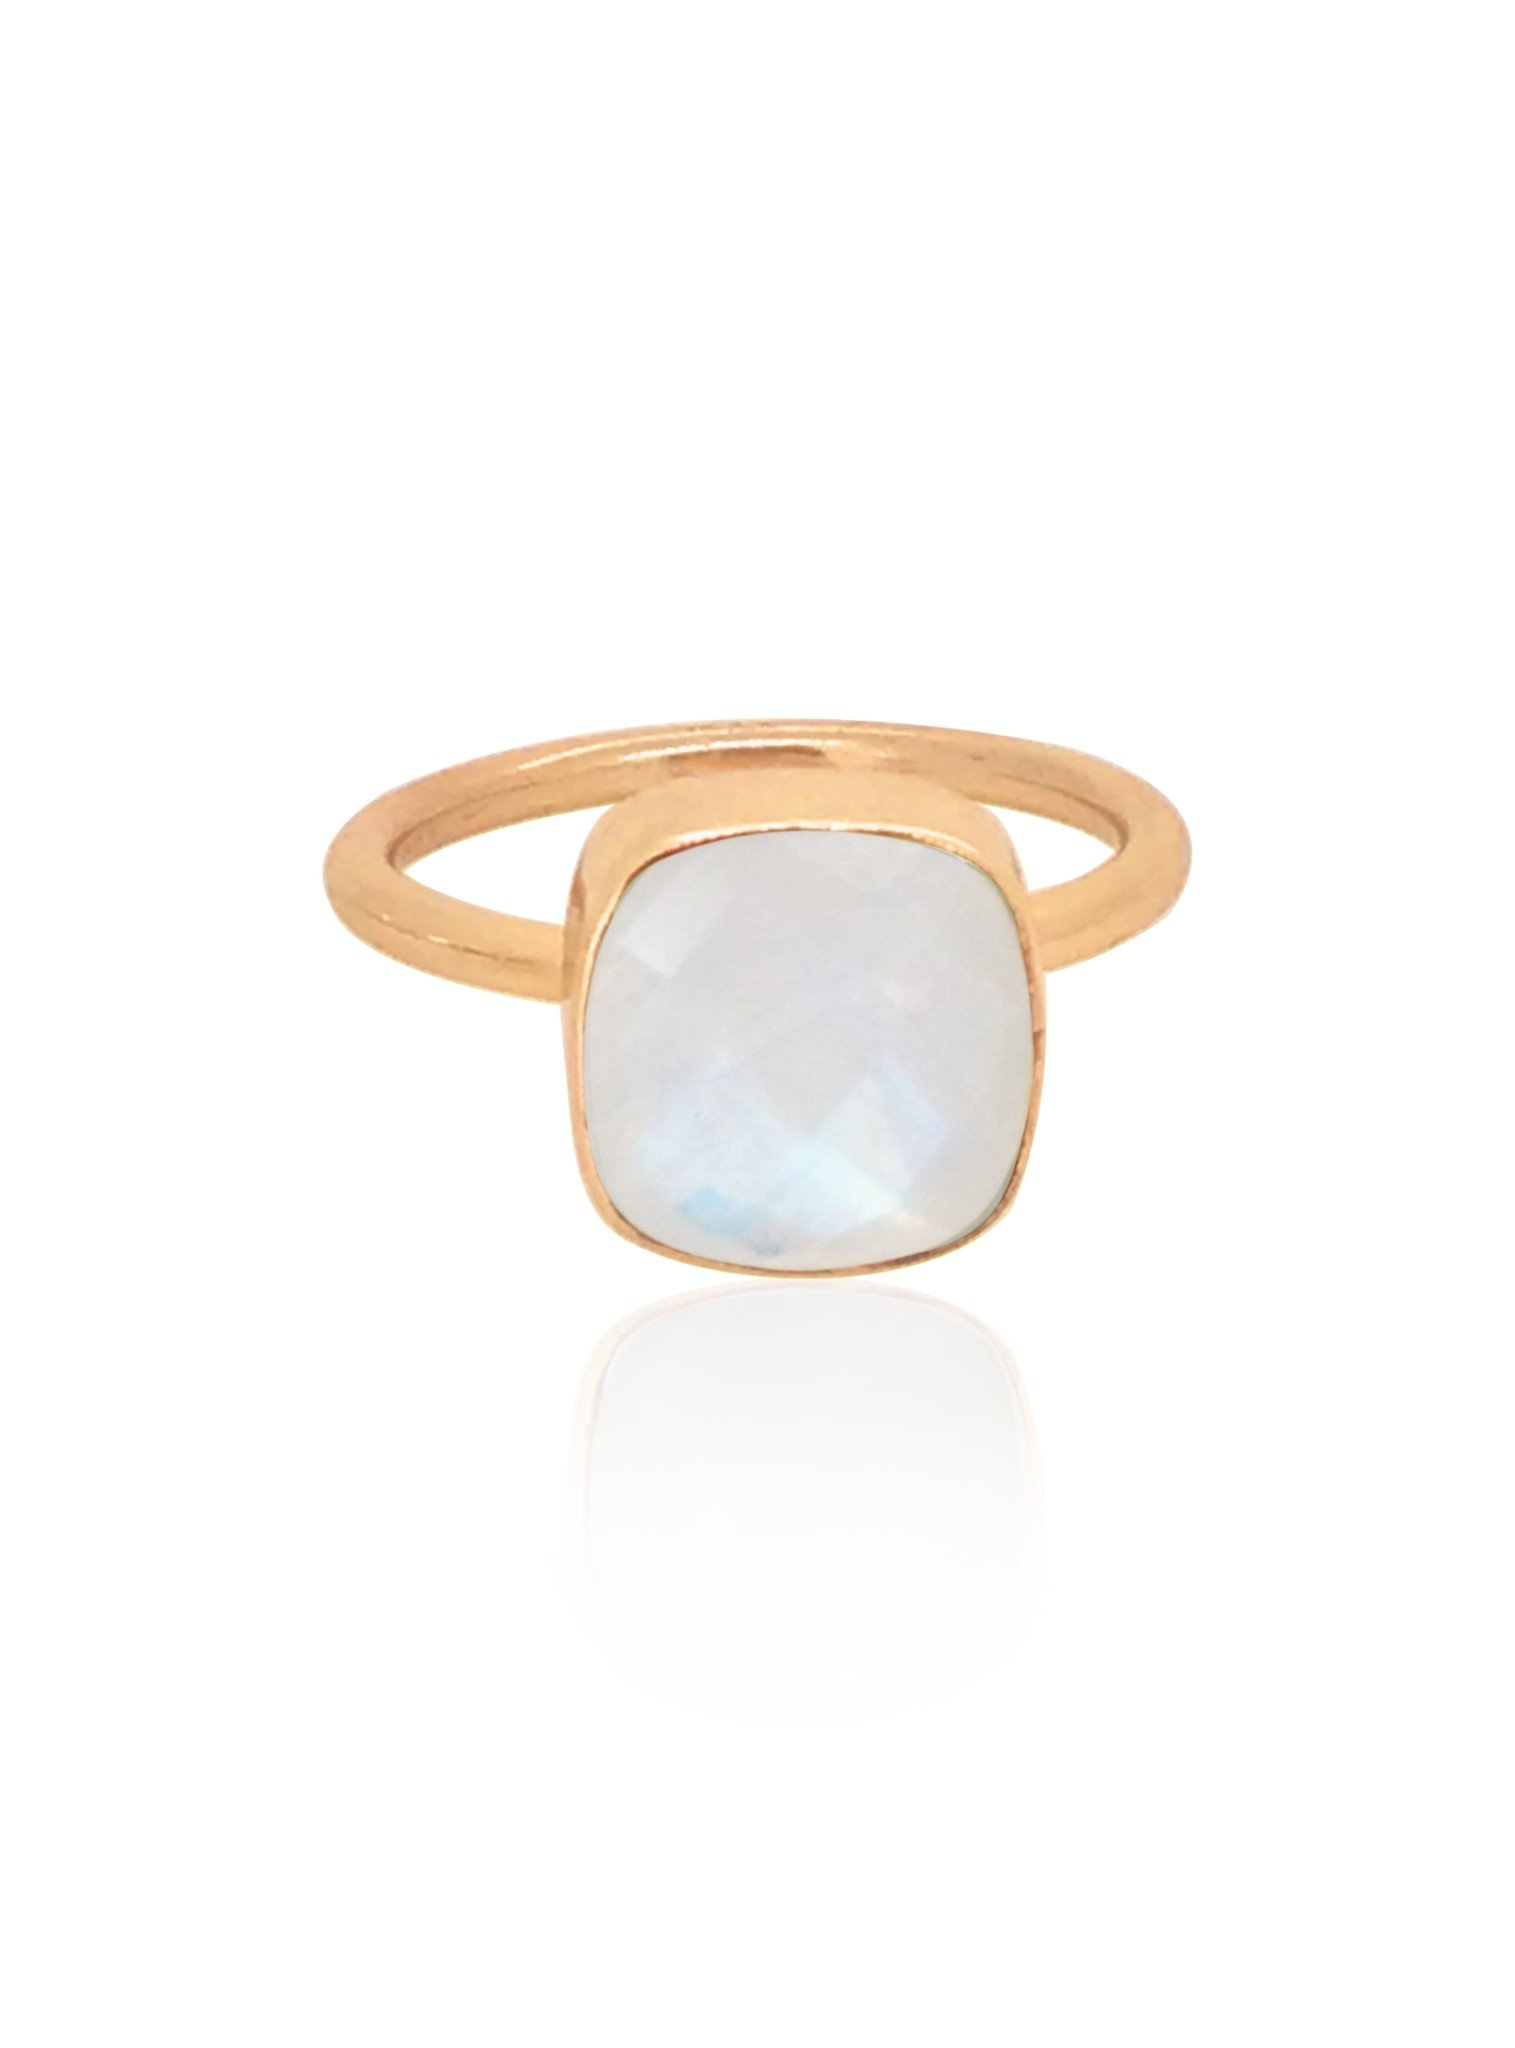 Indie Moonstone Gemstone Ring in Rose Gold